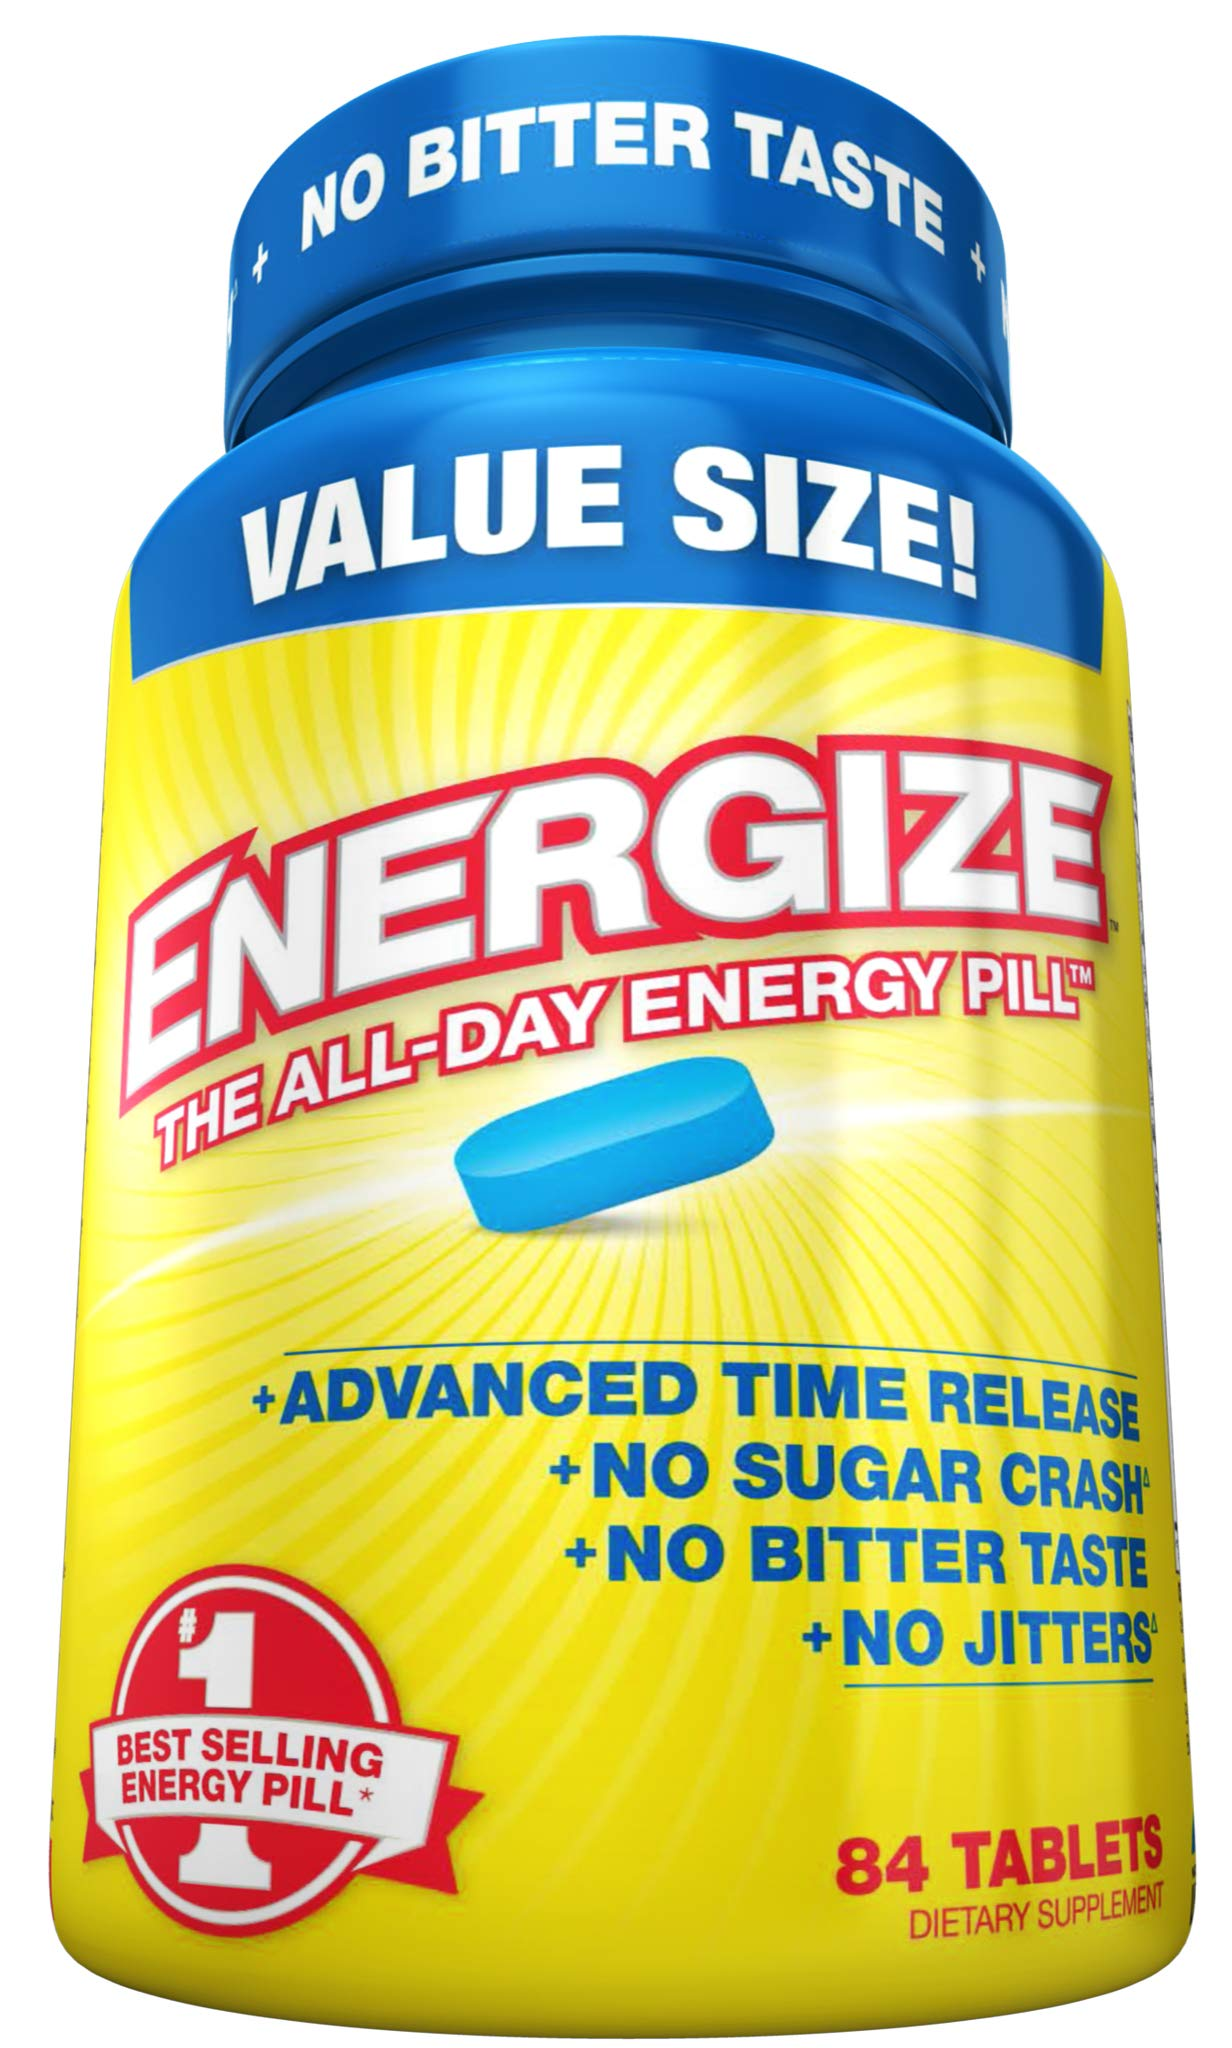 Energize Caffeine Energy Pills - Healthy Focus Brain Supplement - Improve Performance, Increase Alertness and Clarity - Smooth All Day Energy, No Jitters, No Crash - 84 Time Released Tablets by iSatori